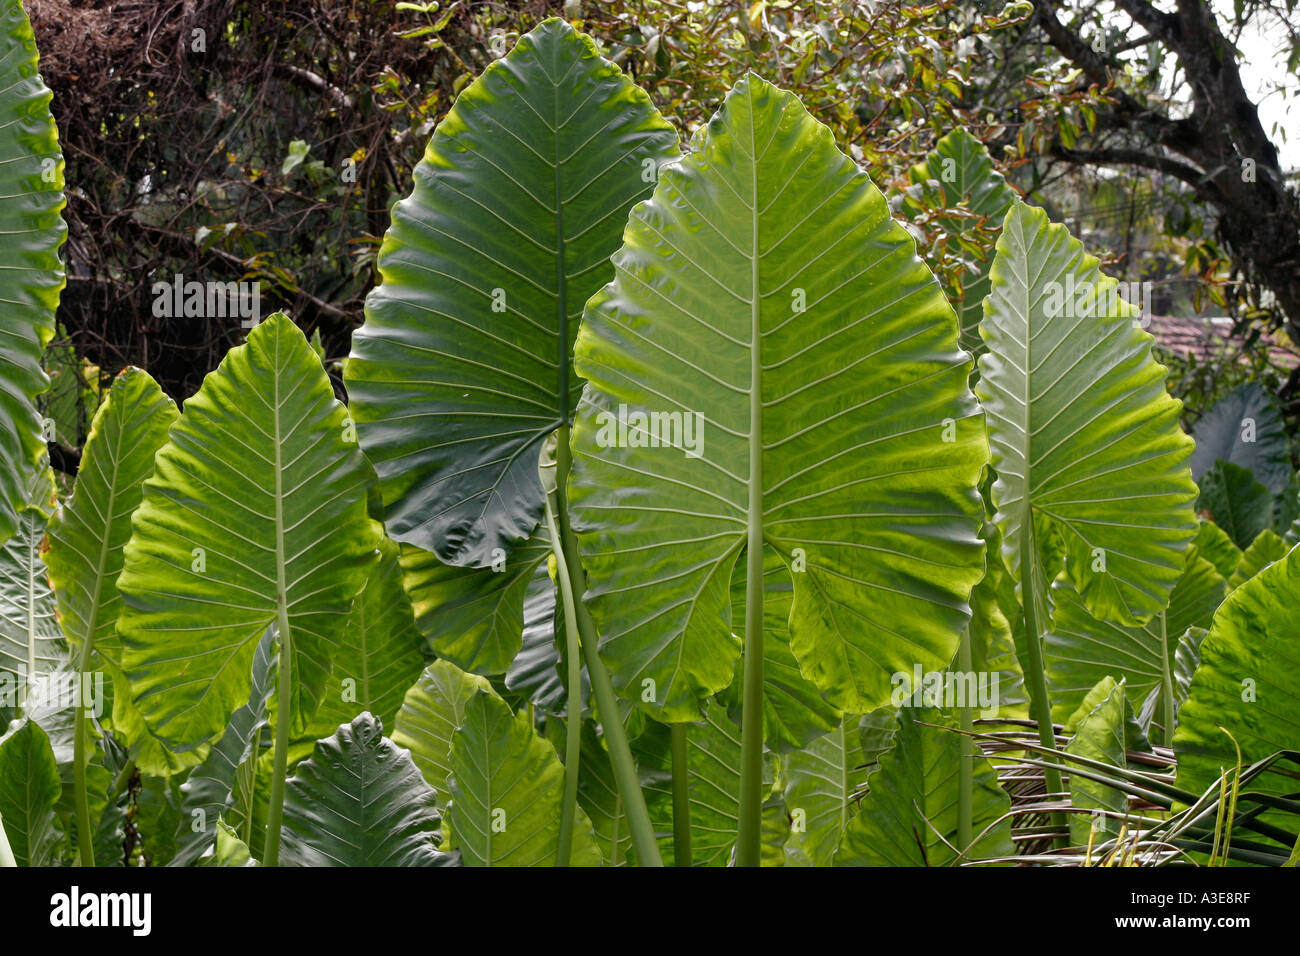 Large Leaf Houseplant Sri Lanka Tropical Plant With Large Leaves Standing